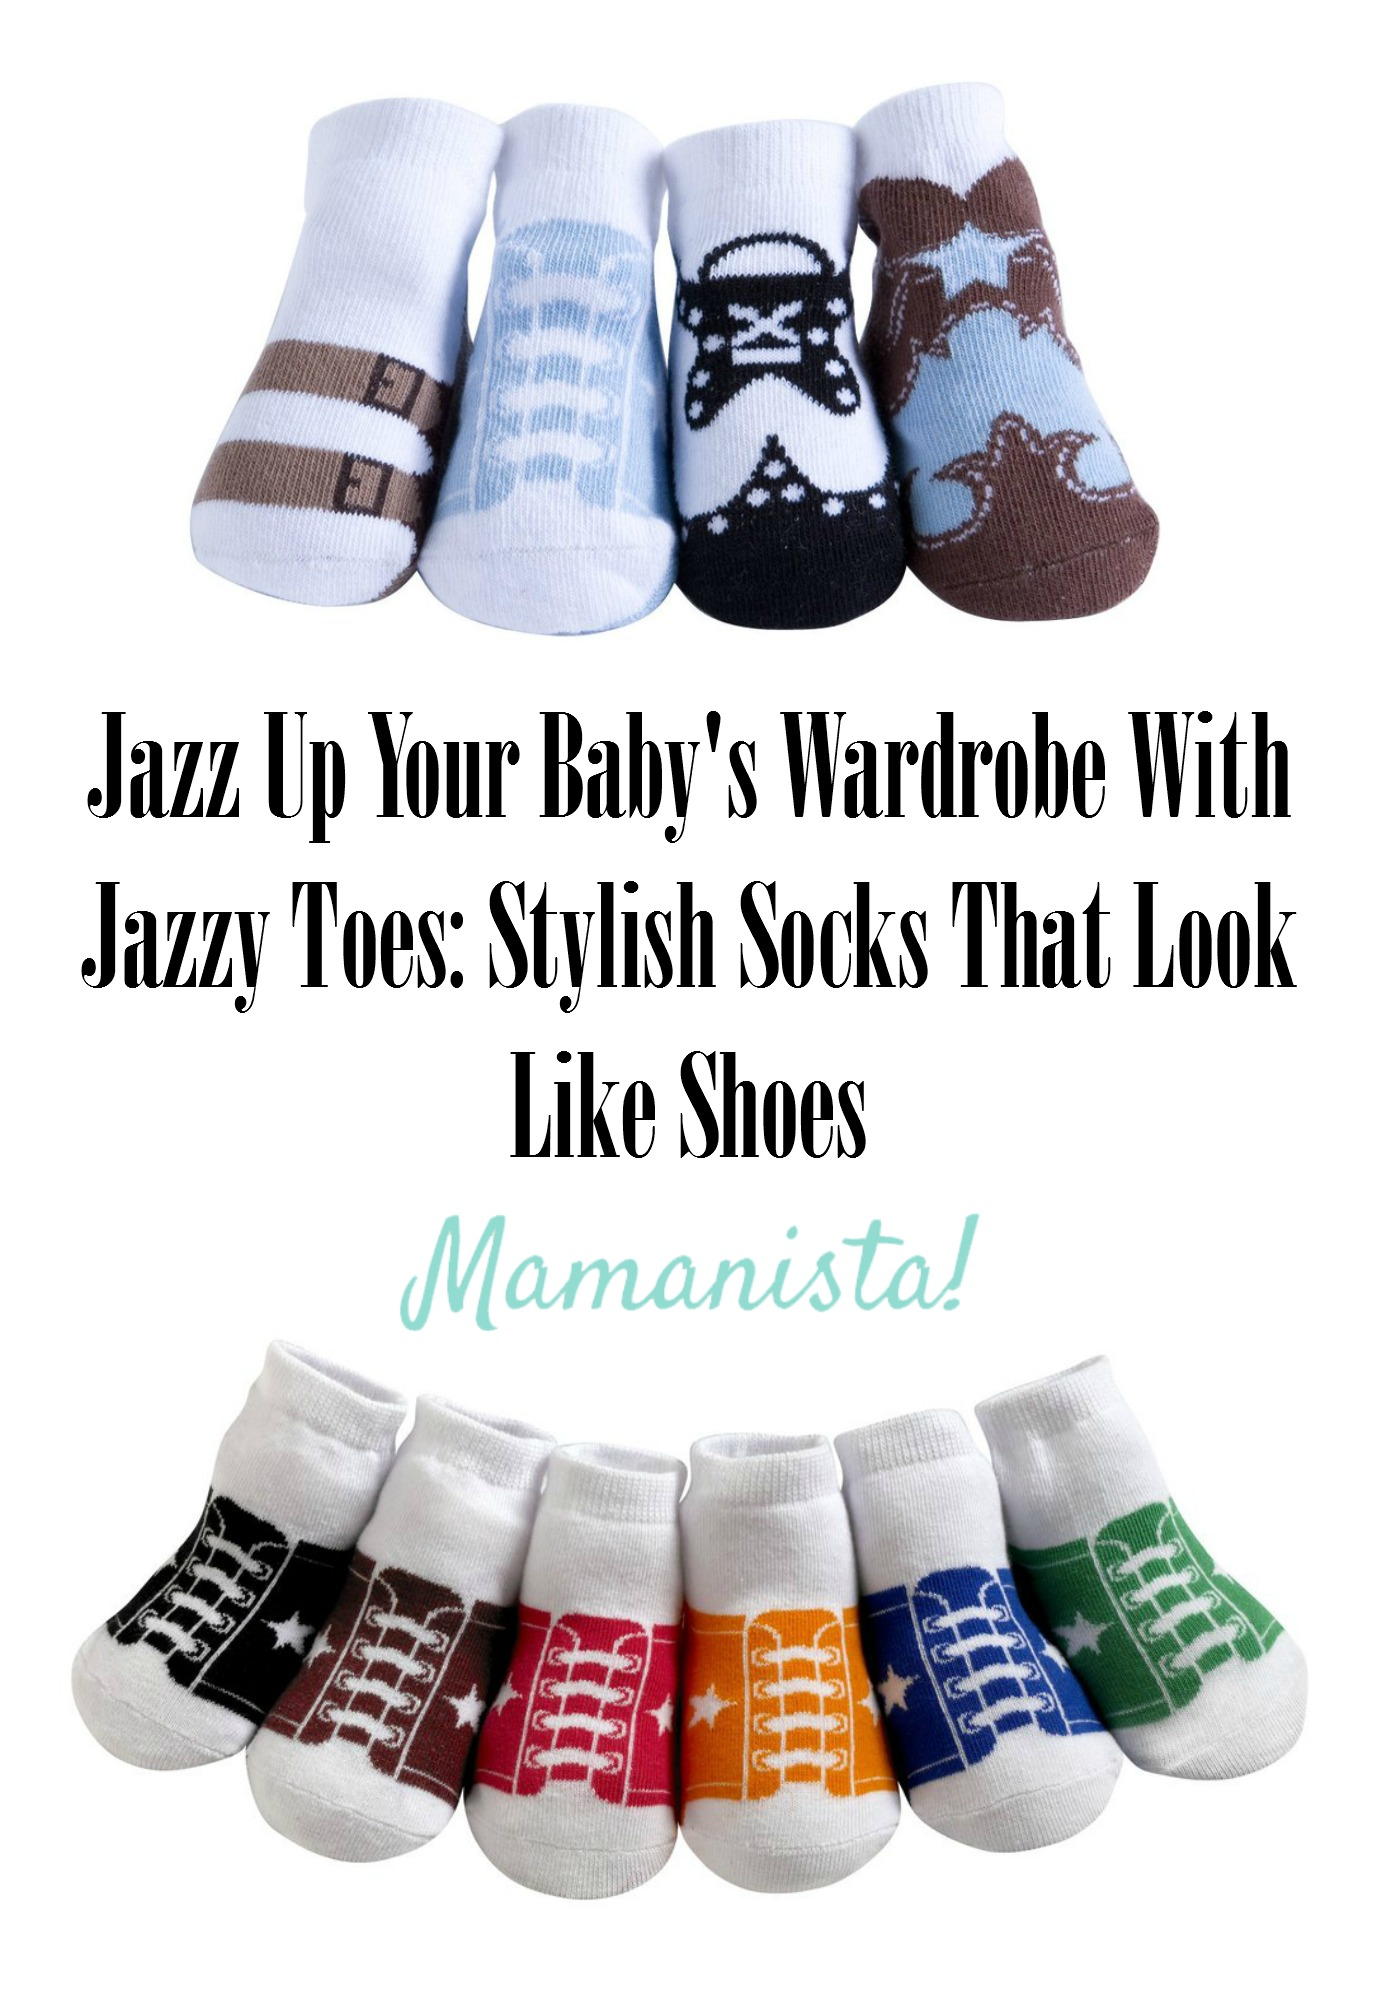 Jazz Up Your Baby's Wardrobe With Jazzy Toes: Stylish Socks That Look Like Shoes